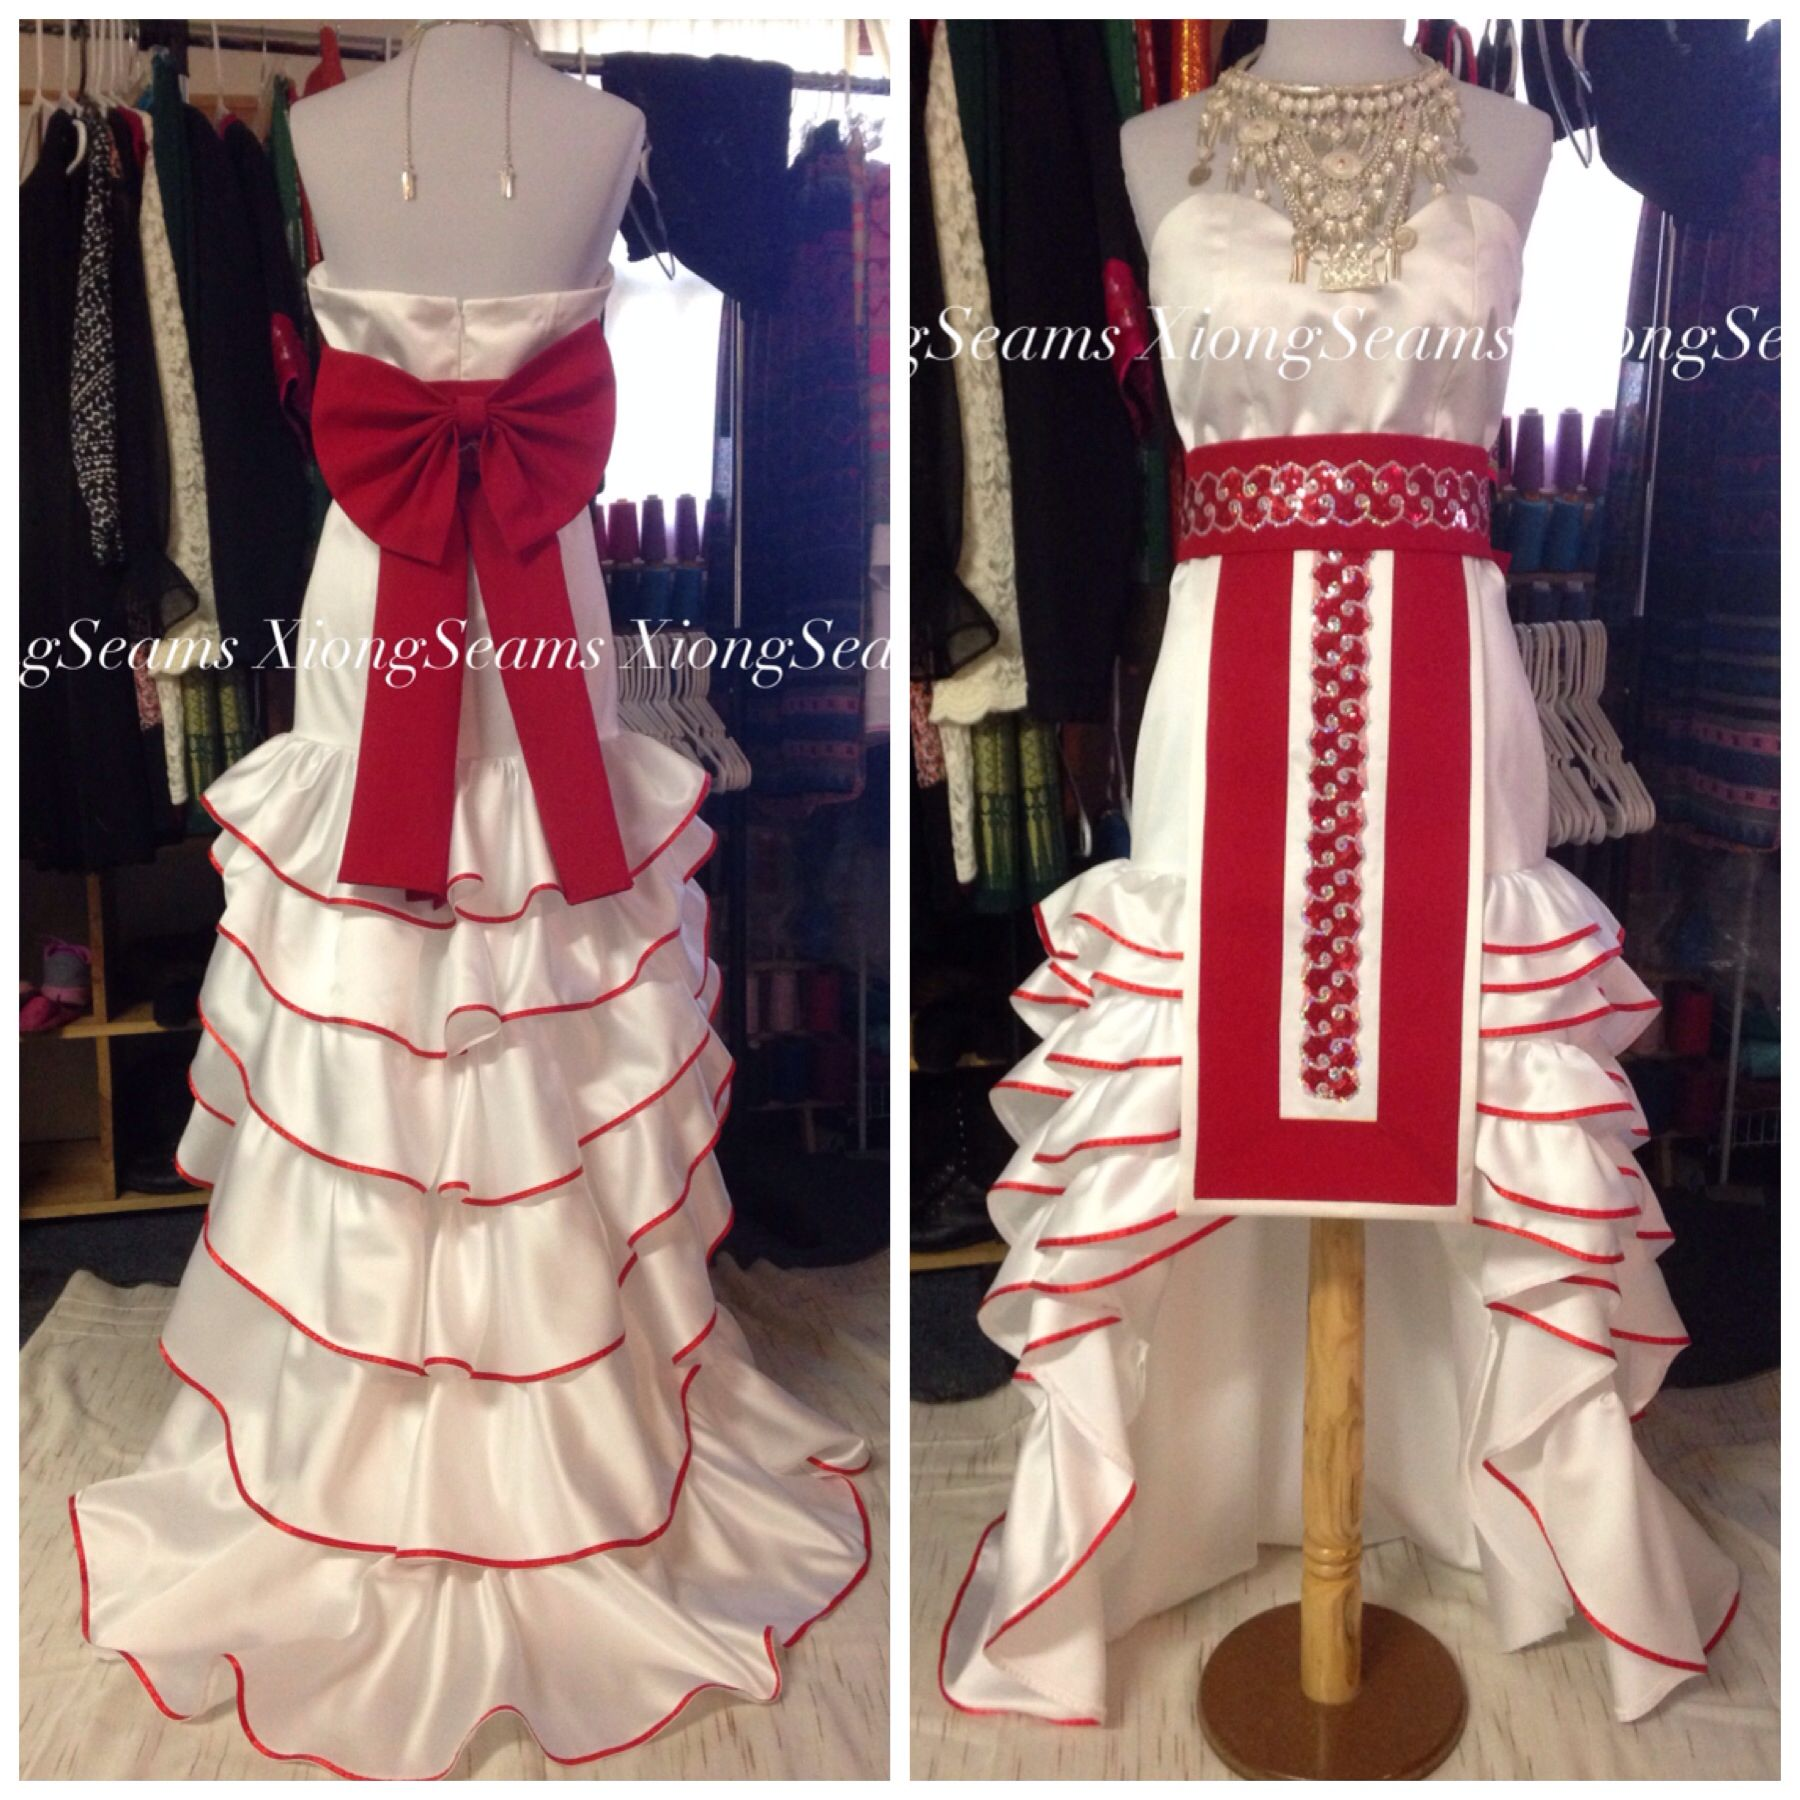 Permalink to Hmong Wedding Dress